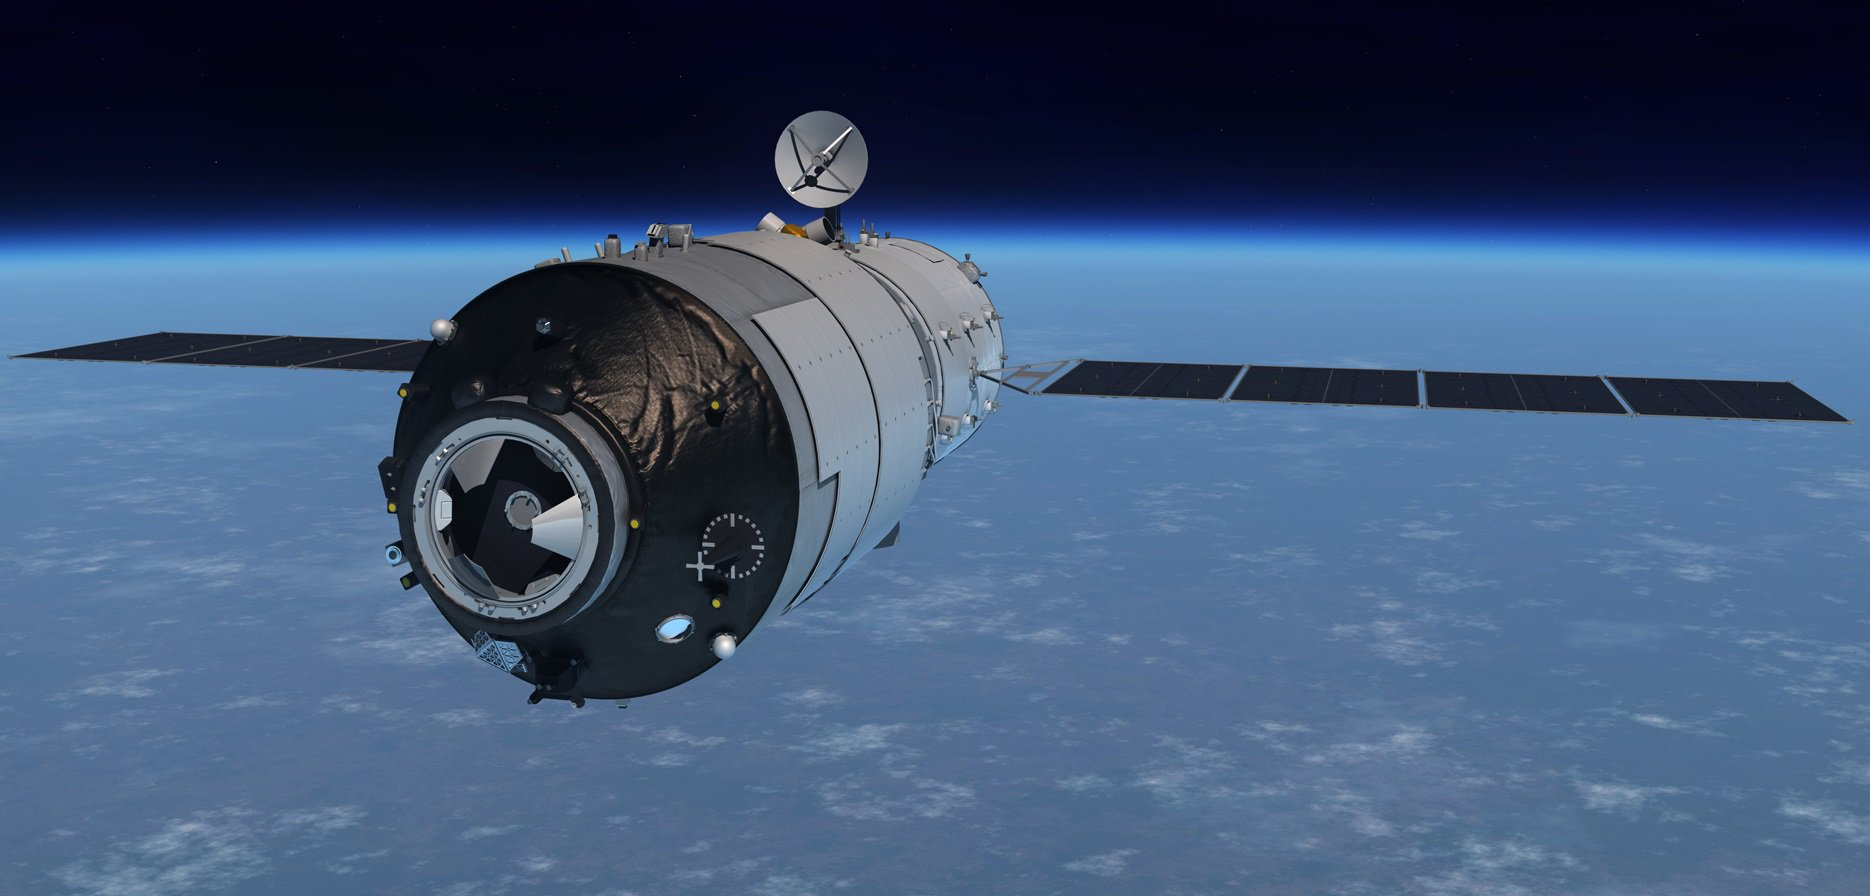 china space agency - 696×392